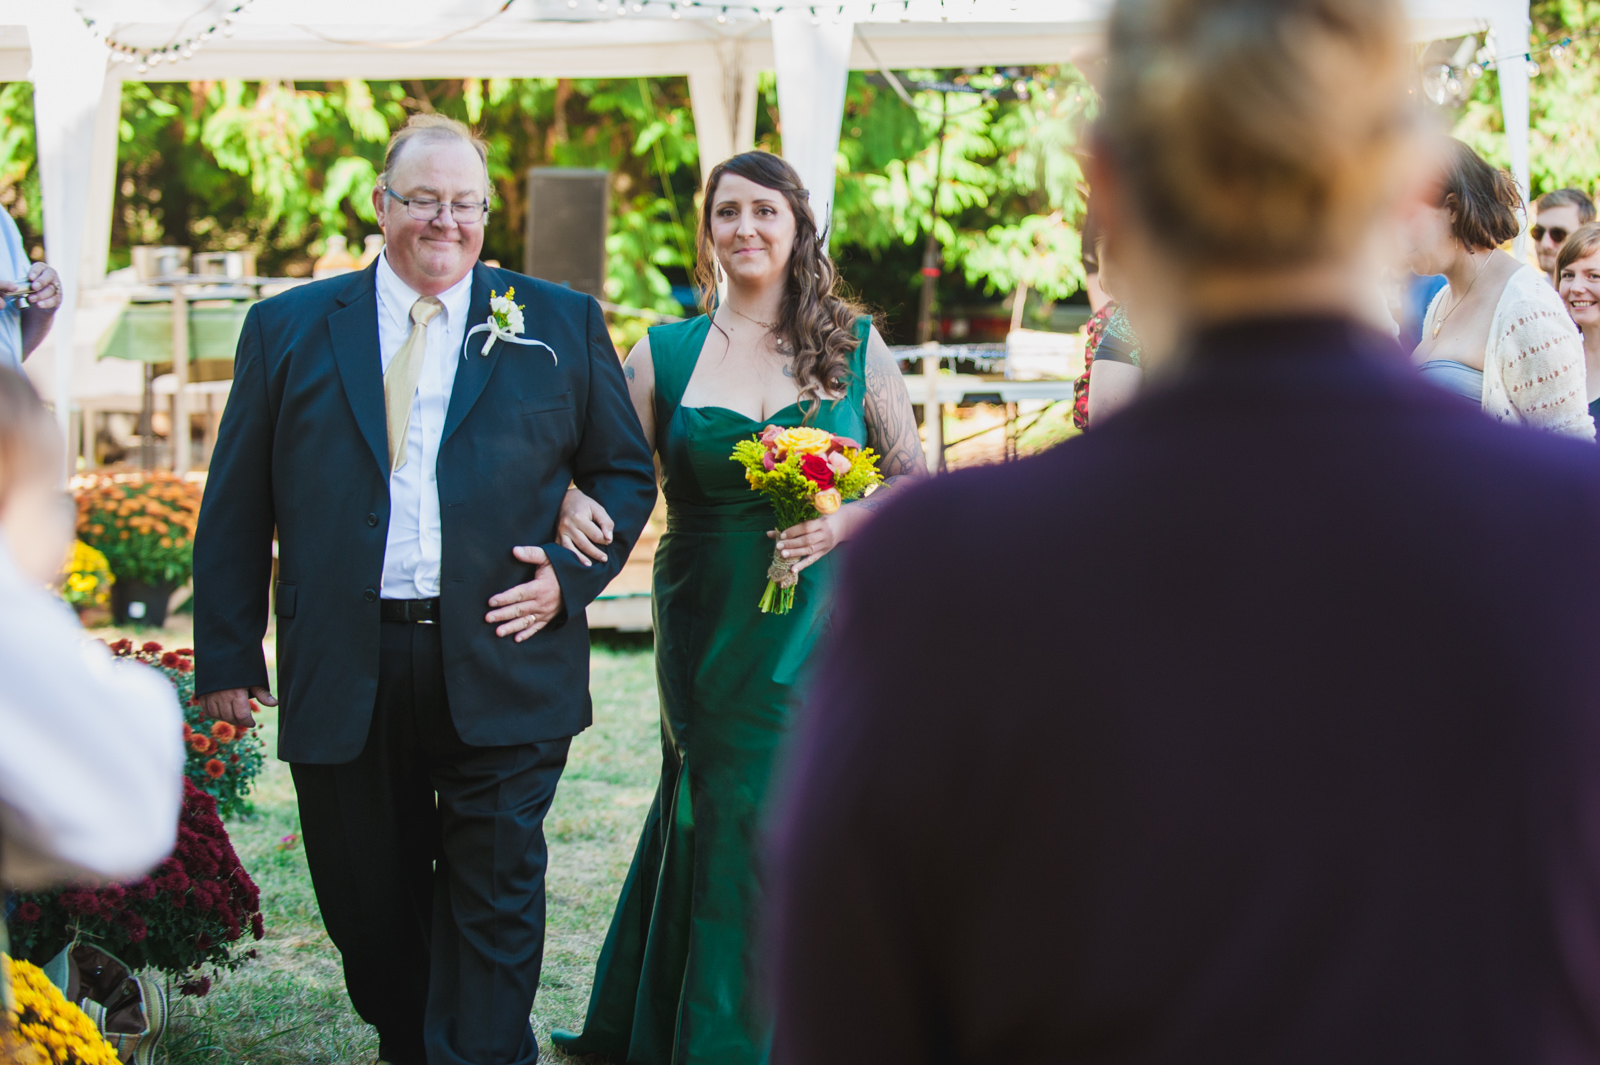 sooke-wedding-photographers-diy-wedding-in-east-sooke-36.jpg